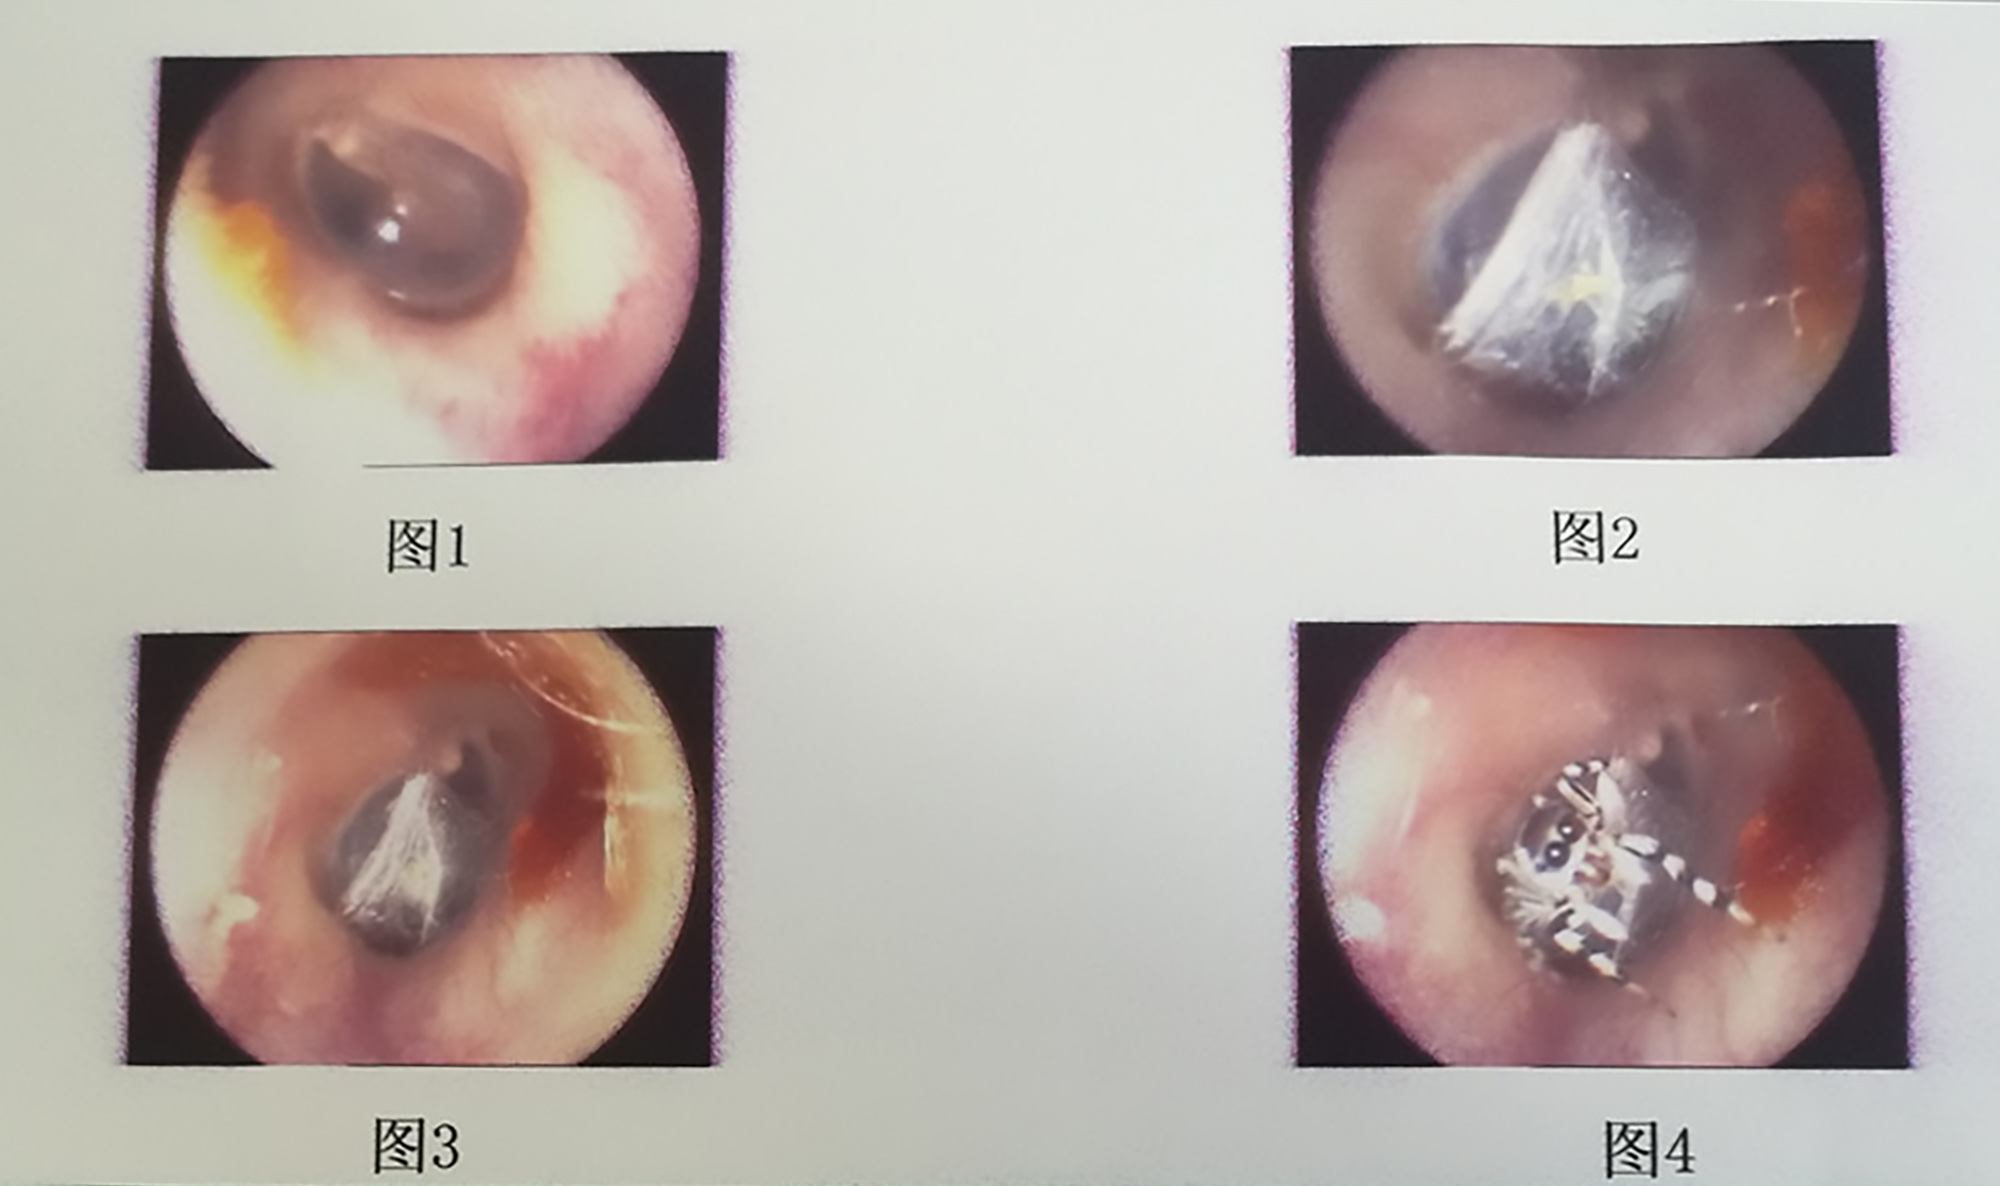 Doctors Find Live Spider Spinning Its Web Inside Woman's Ear